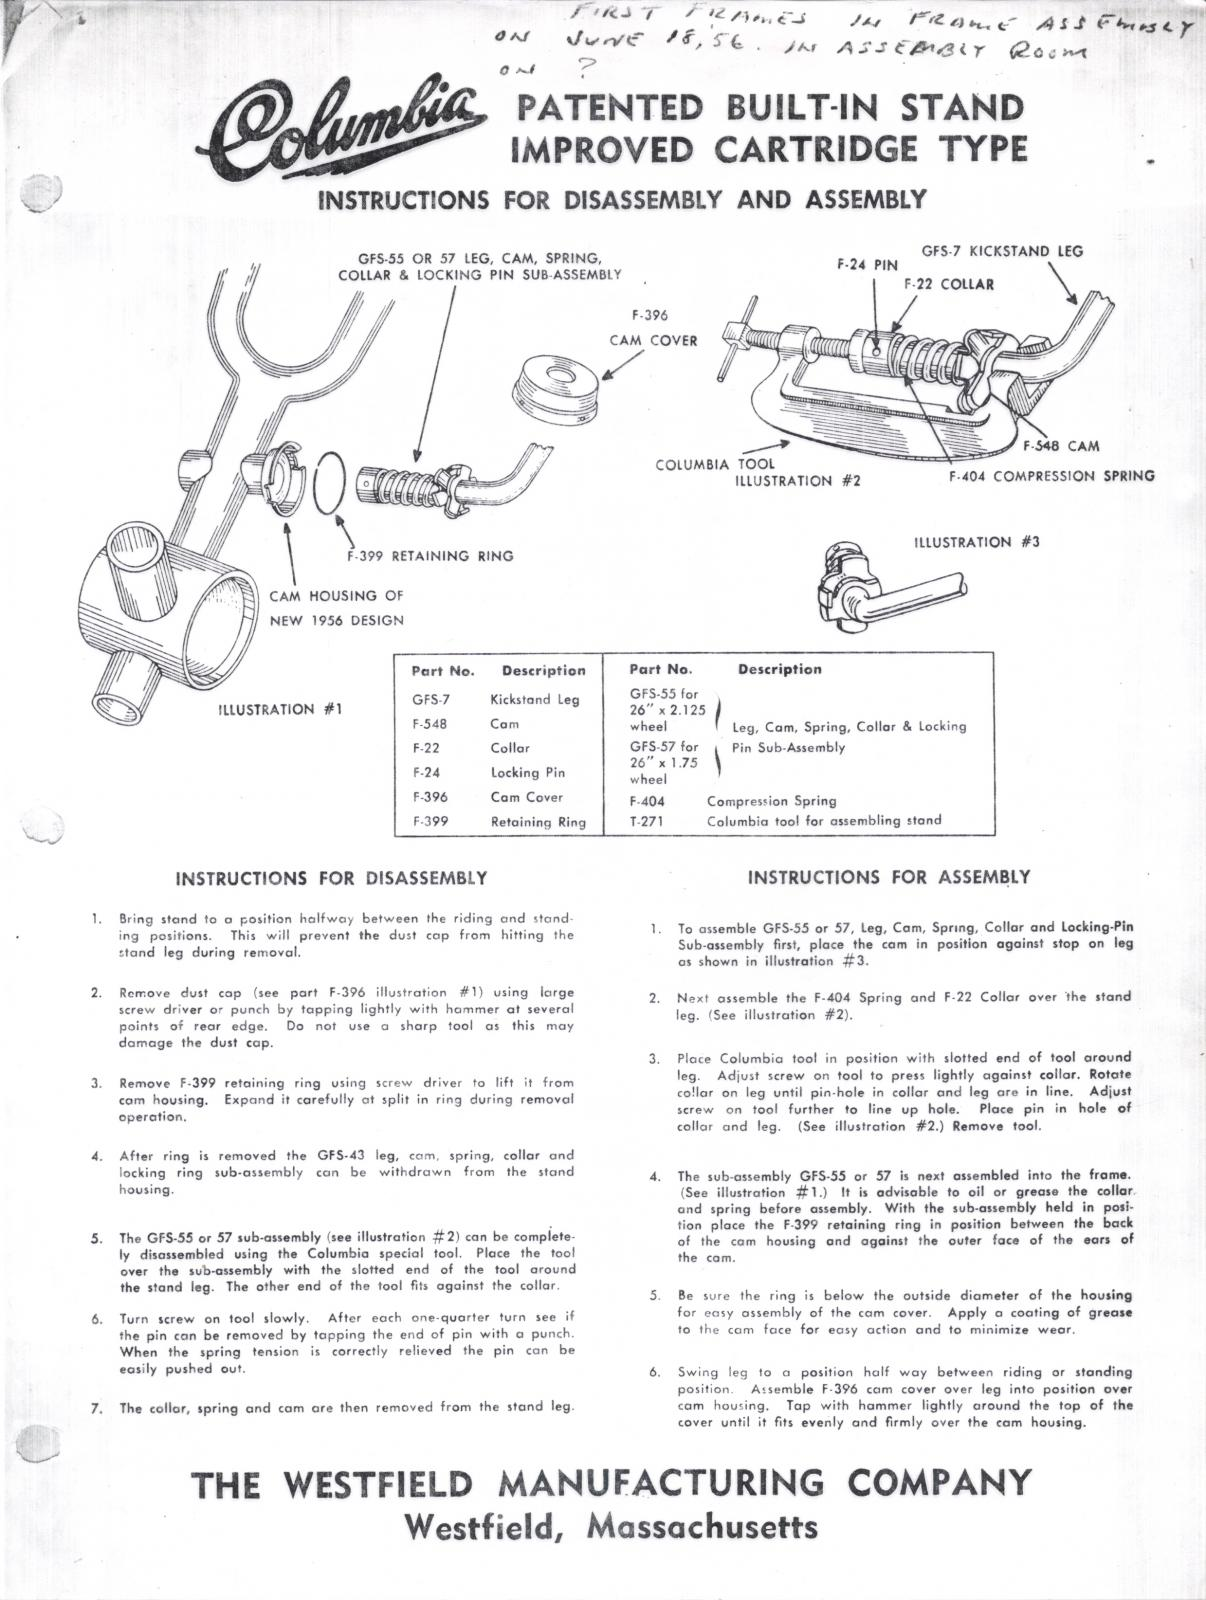 Built-In Stand Improved Cartridge Type Instructions for Assembly and Disassembly June 1956-67.jpg